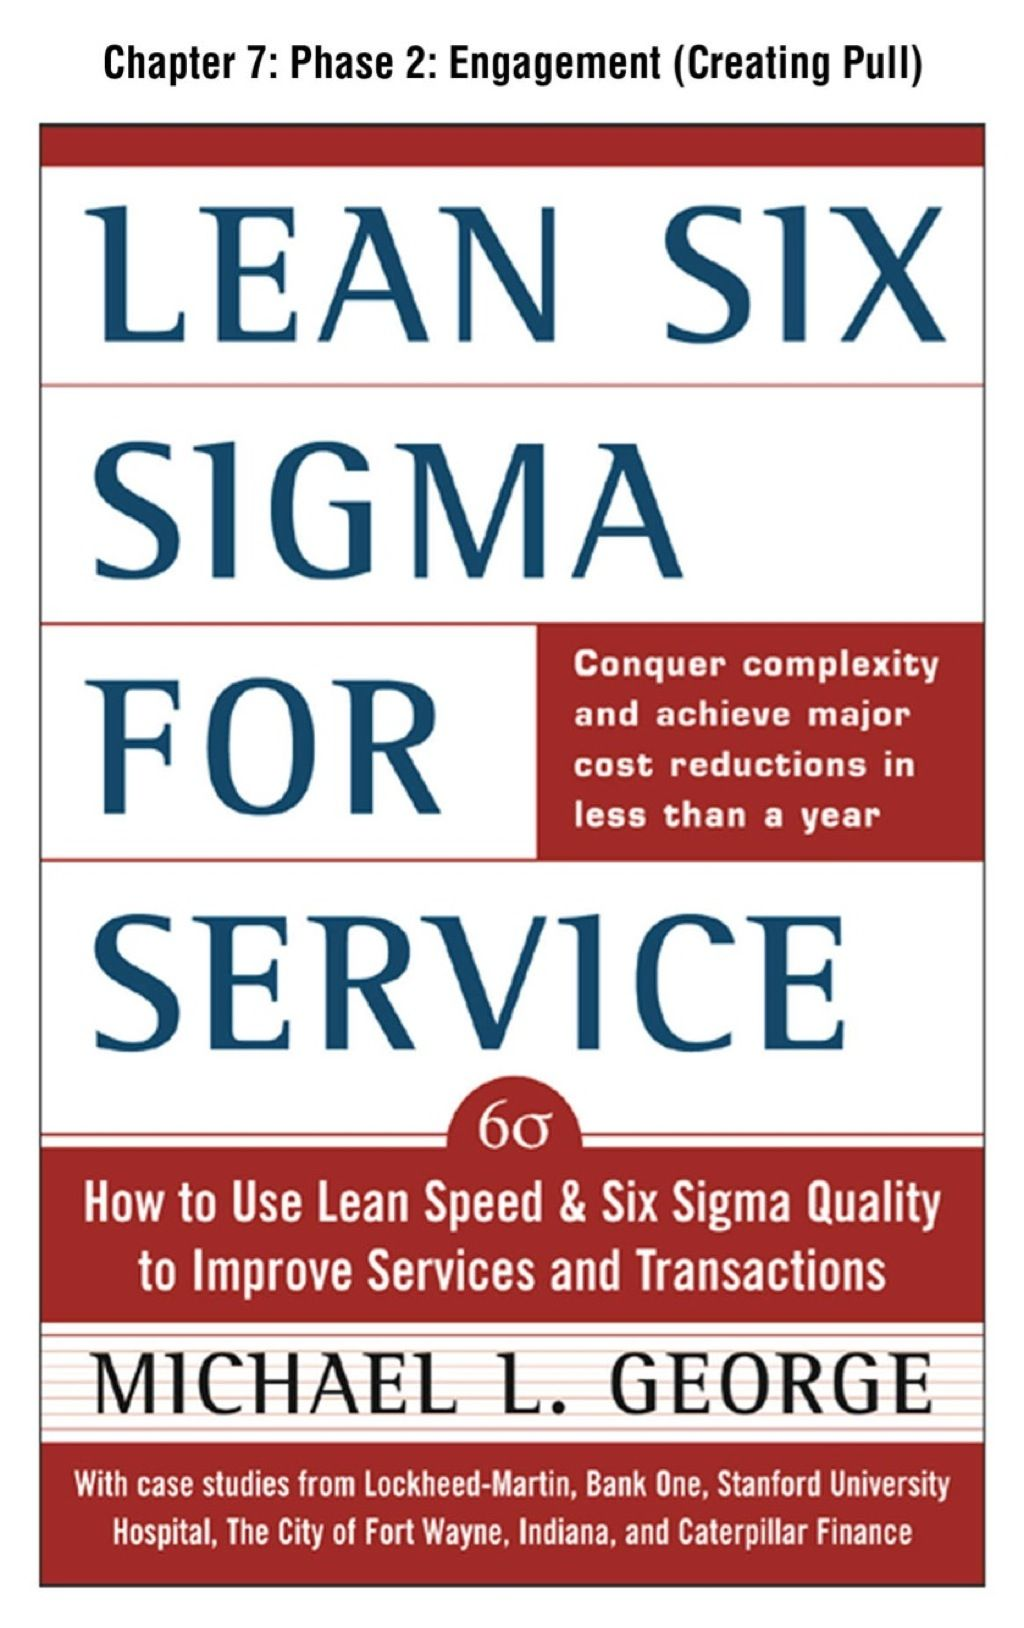 Lean Six Sigma For Service Chapter 7